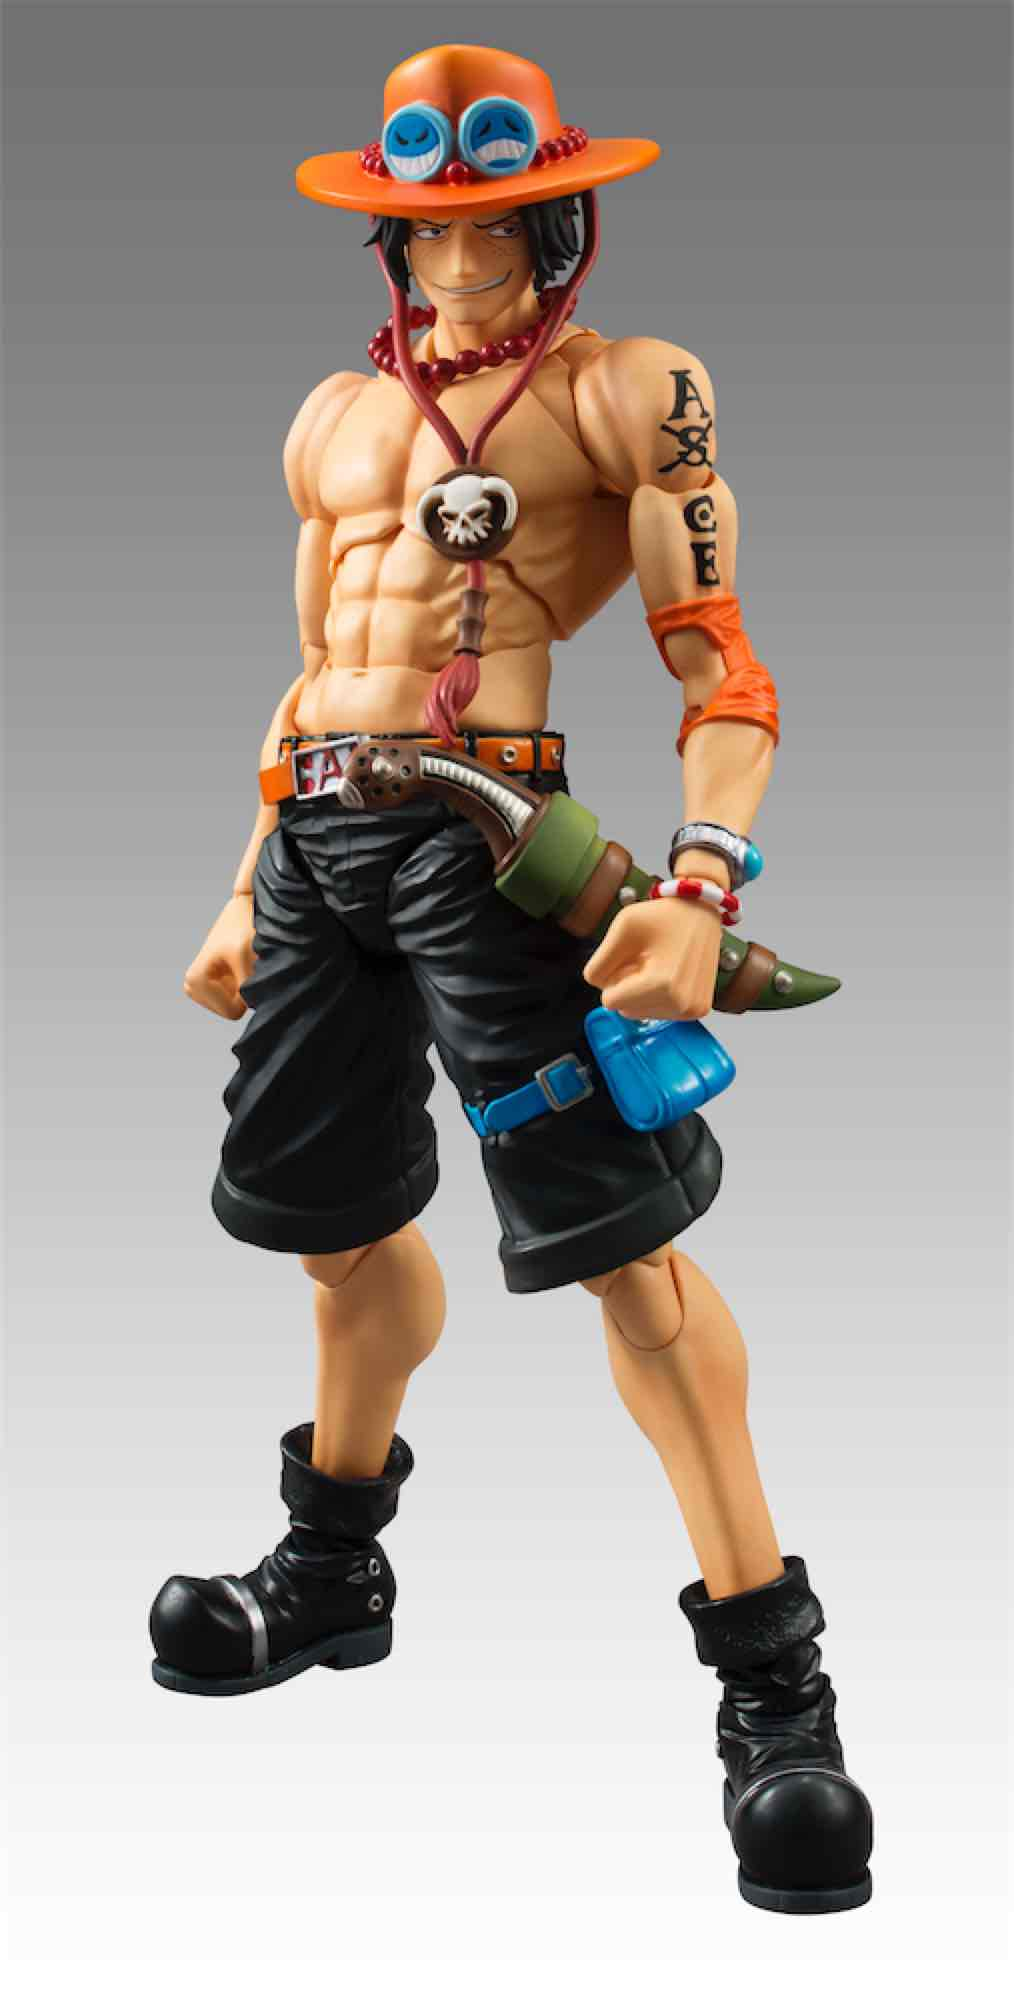 PORTGAS D. ACE FIGURA 18 CM ONE PIECE P.O.P. VARIABLE ACTION HEROS